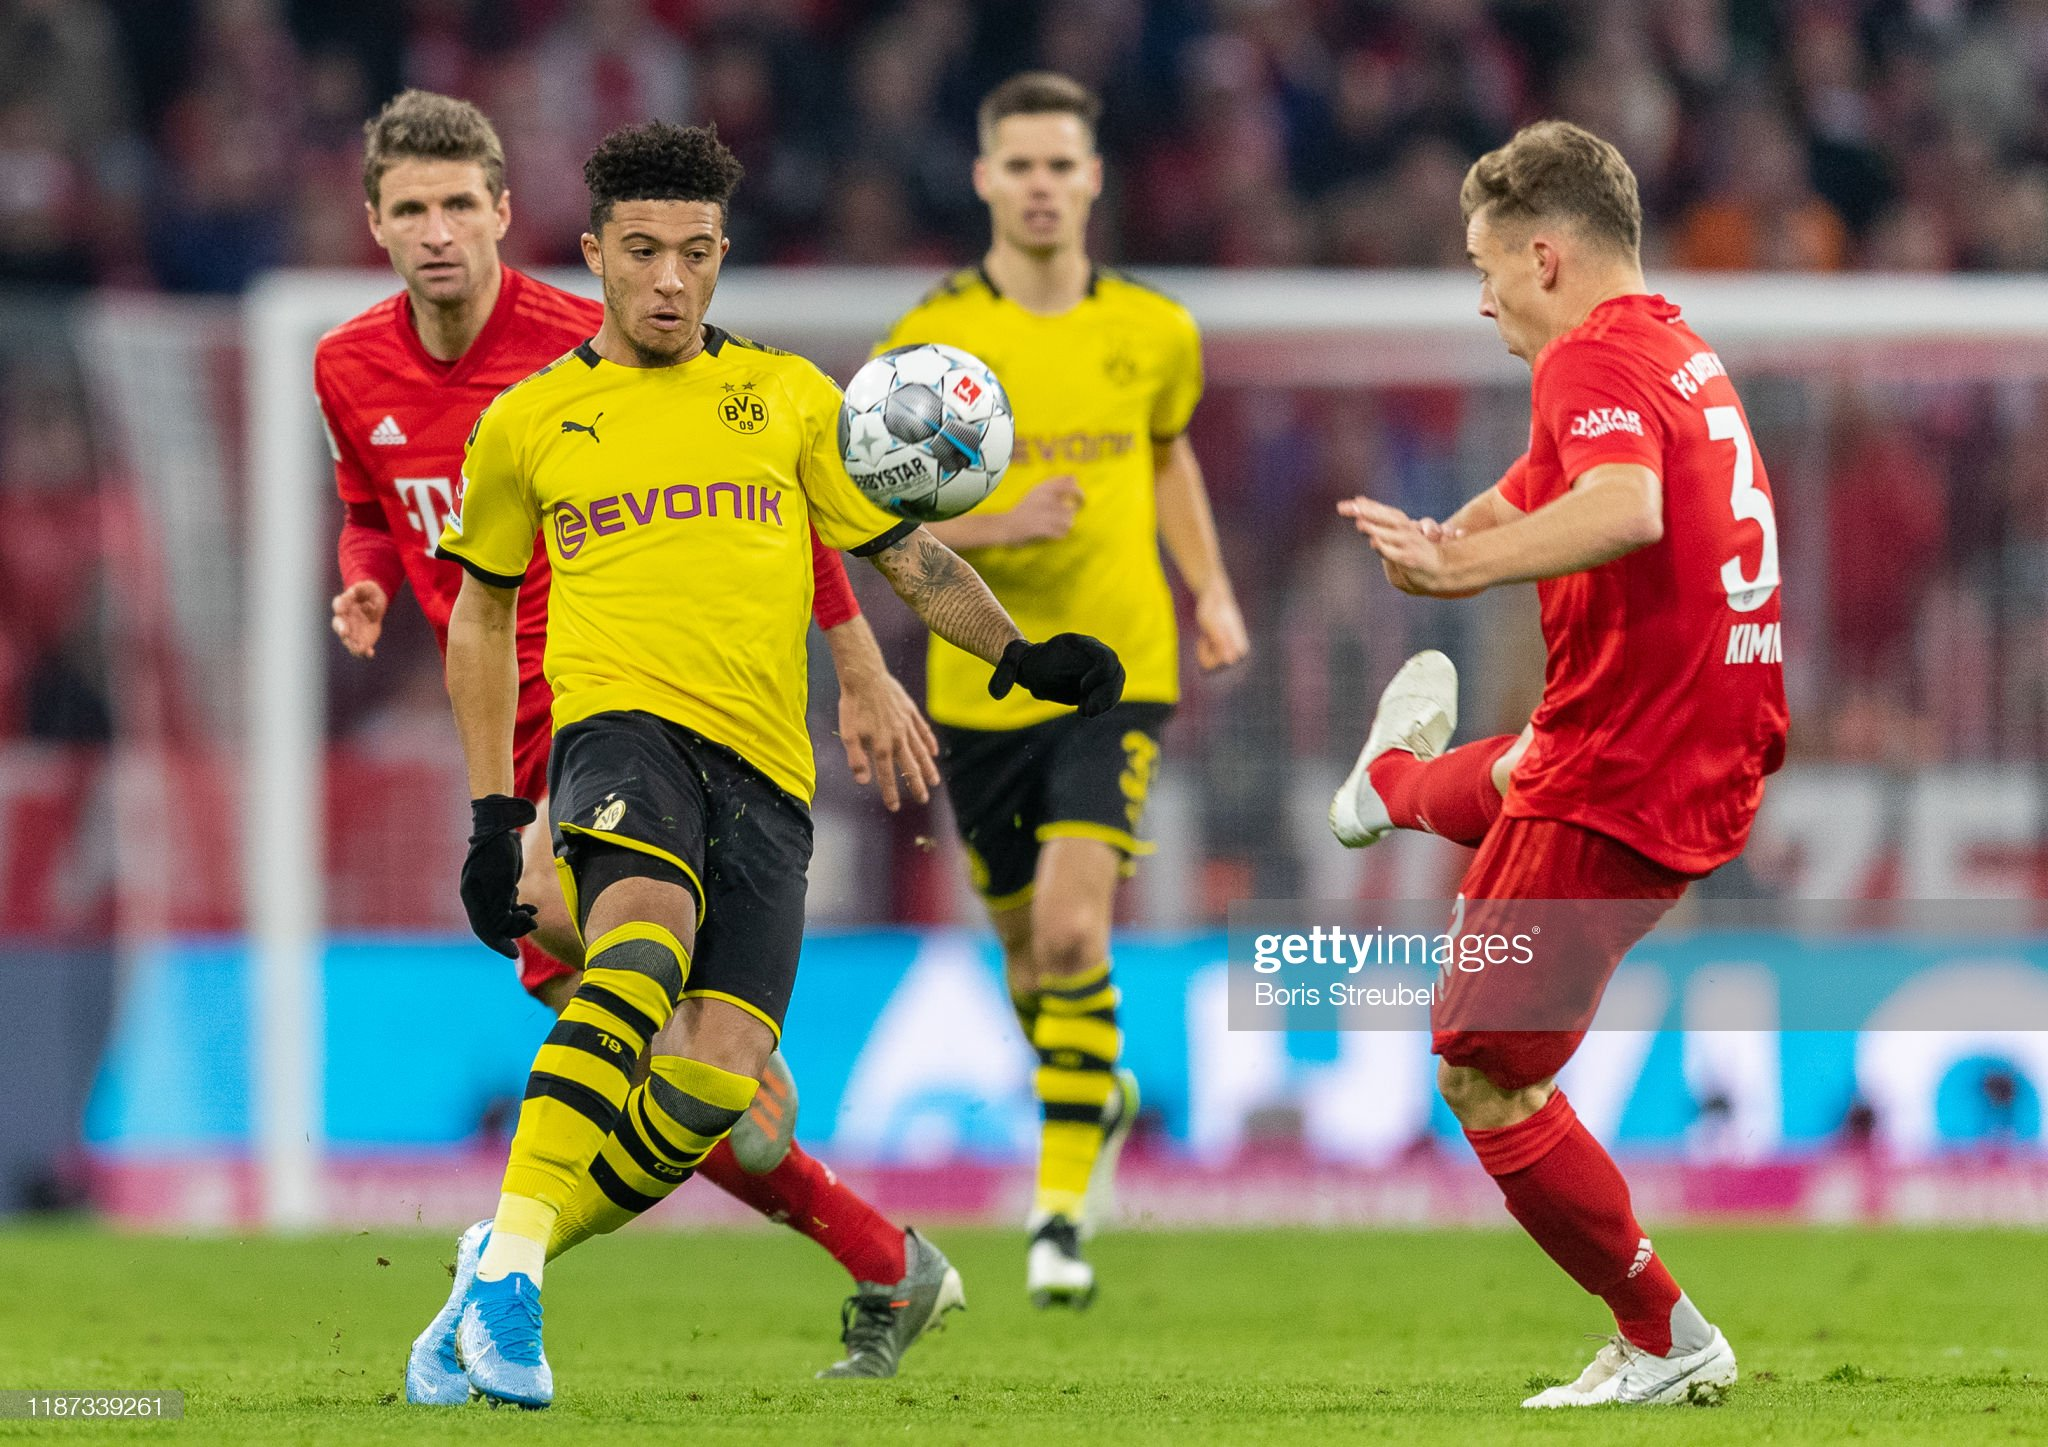 Dortmund vs Bayern Munich Preview, prediction and odds